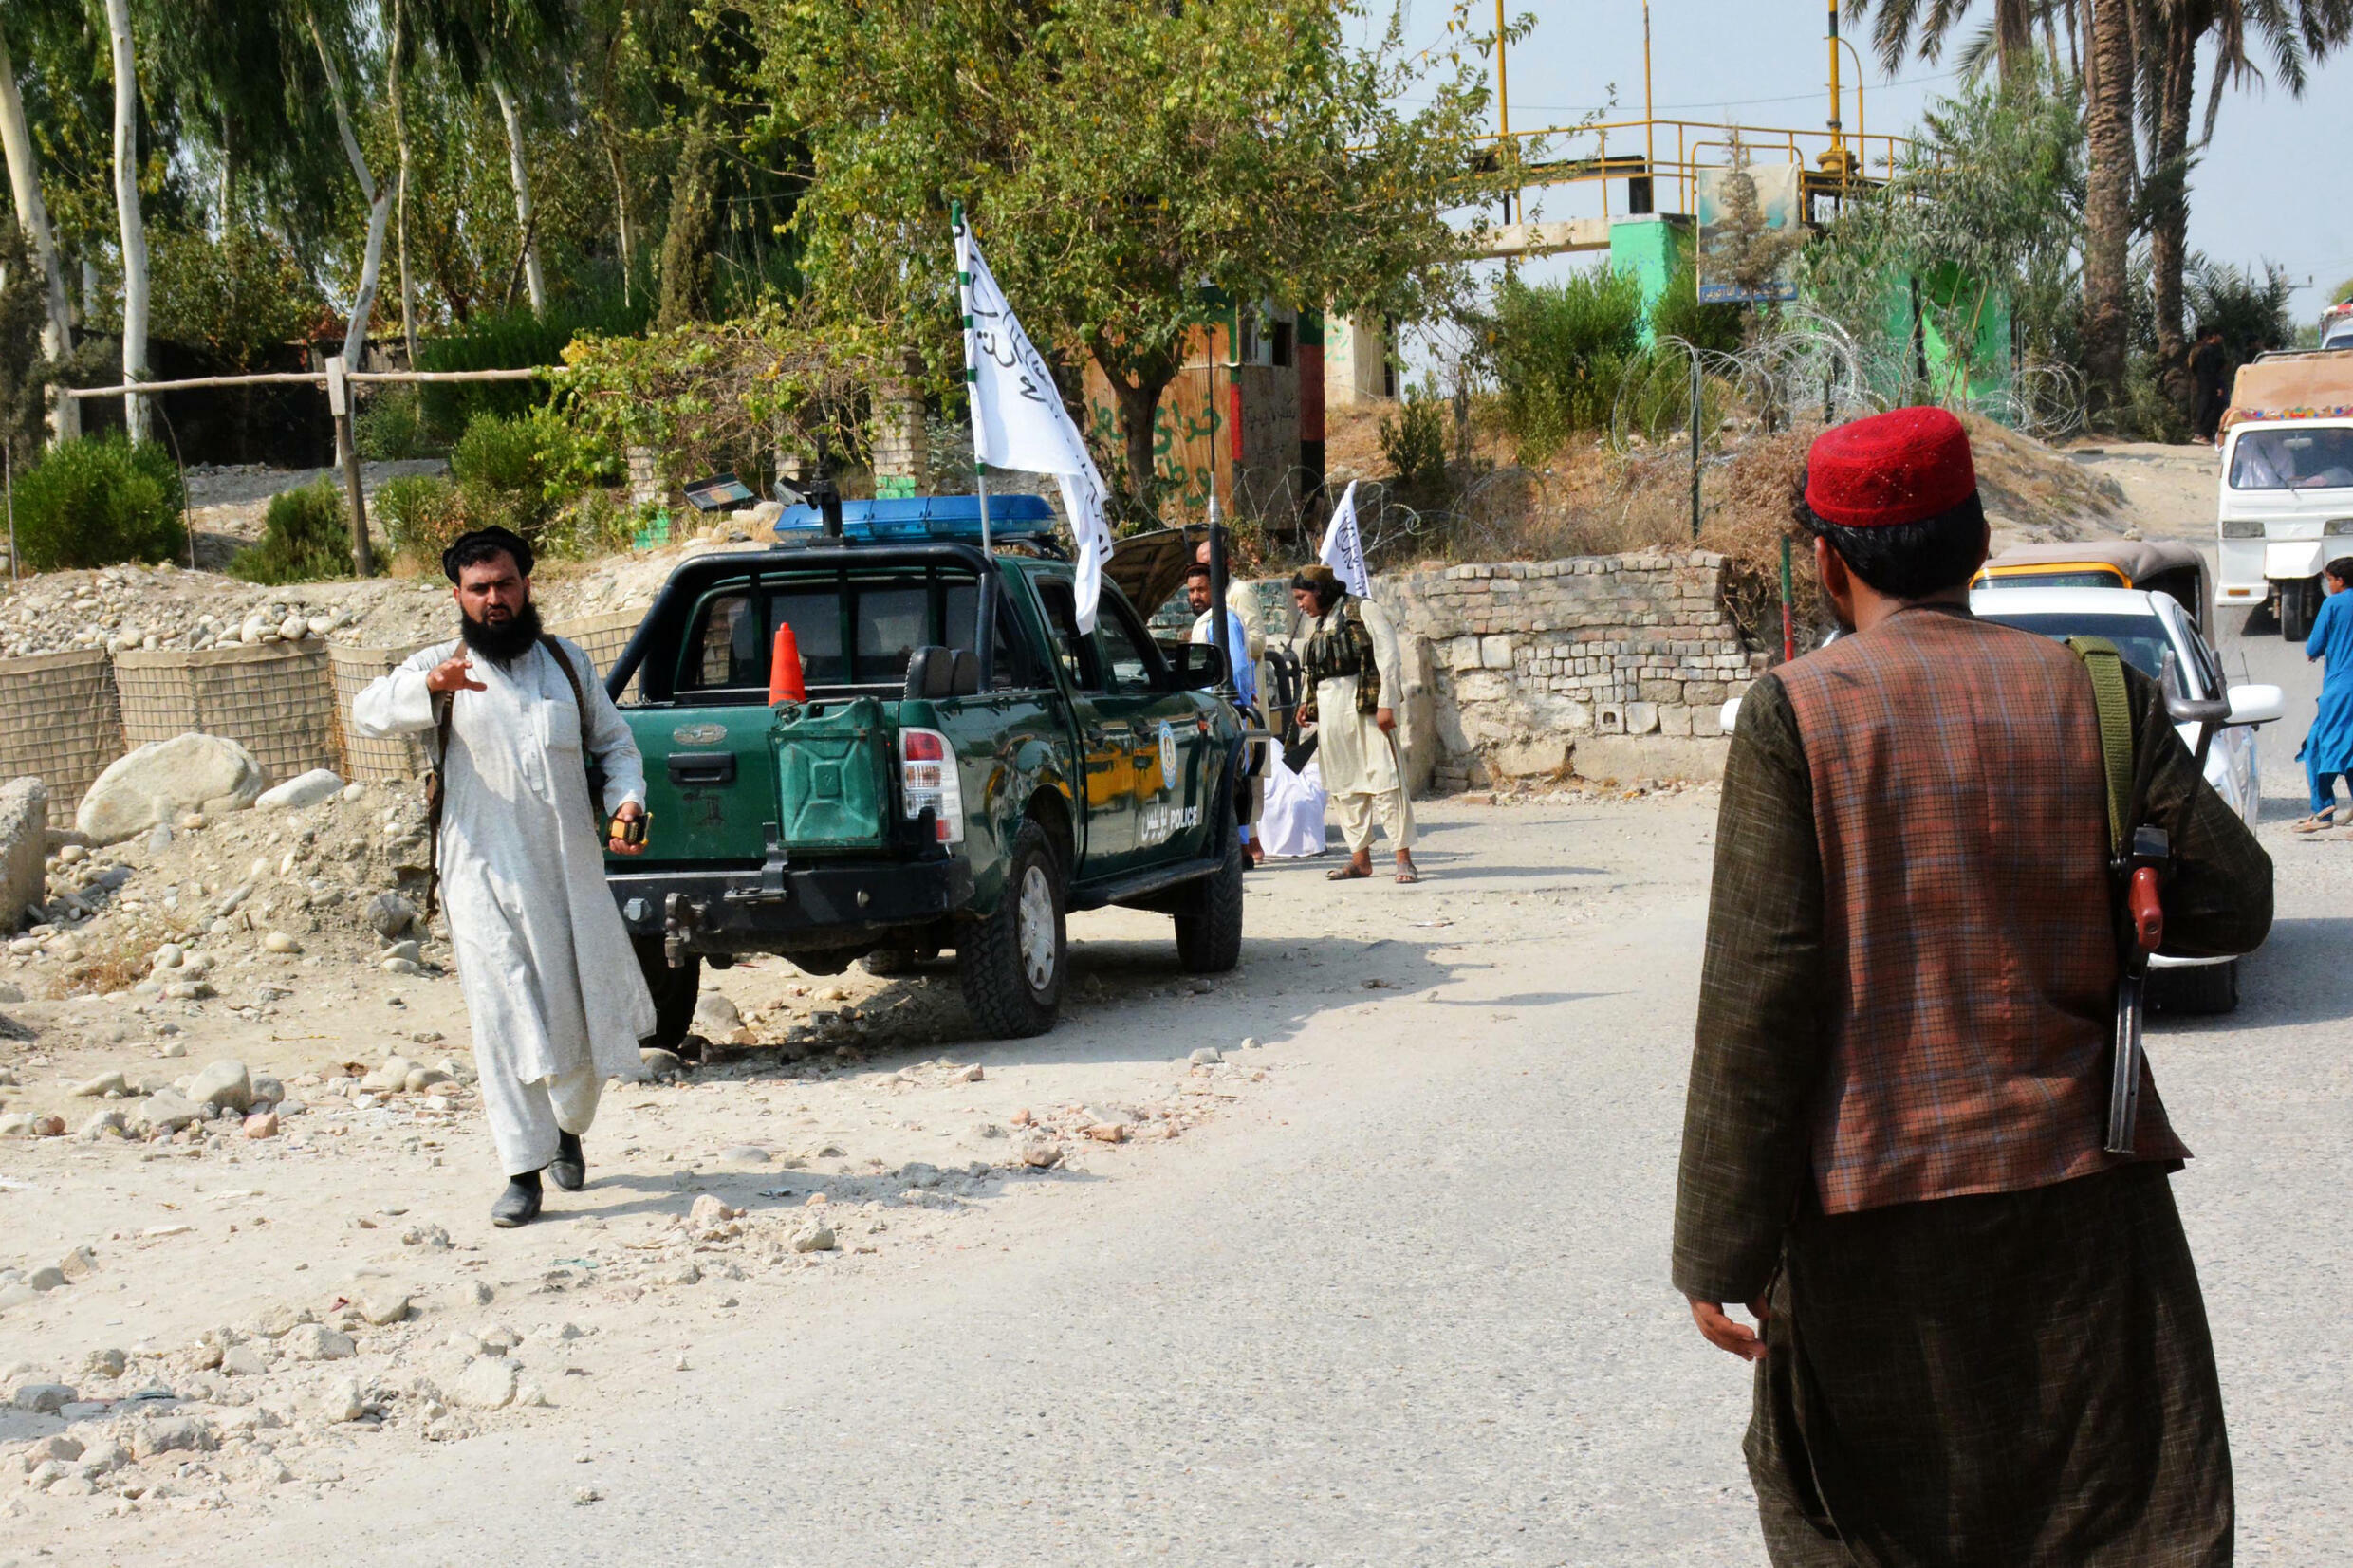 Taliban members inspect near the site of a blast in Jalalabad on September 18